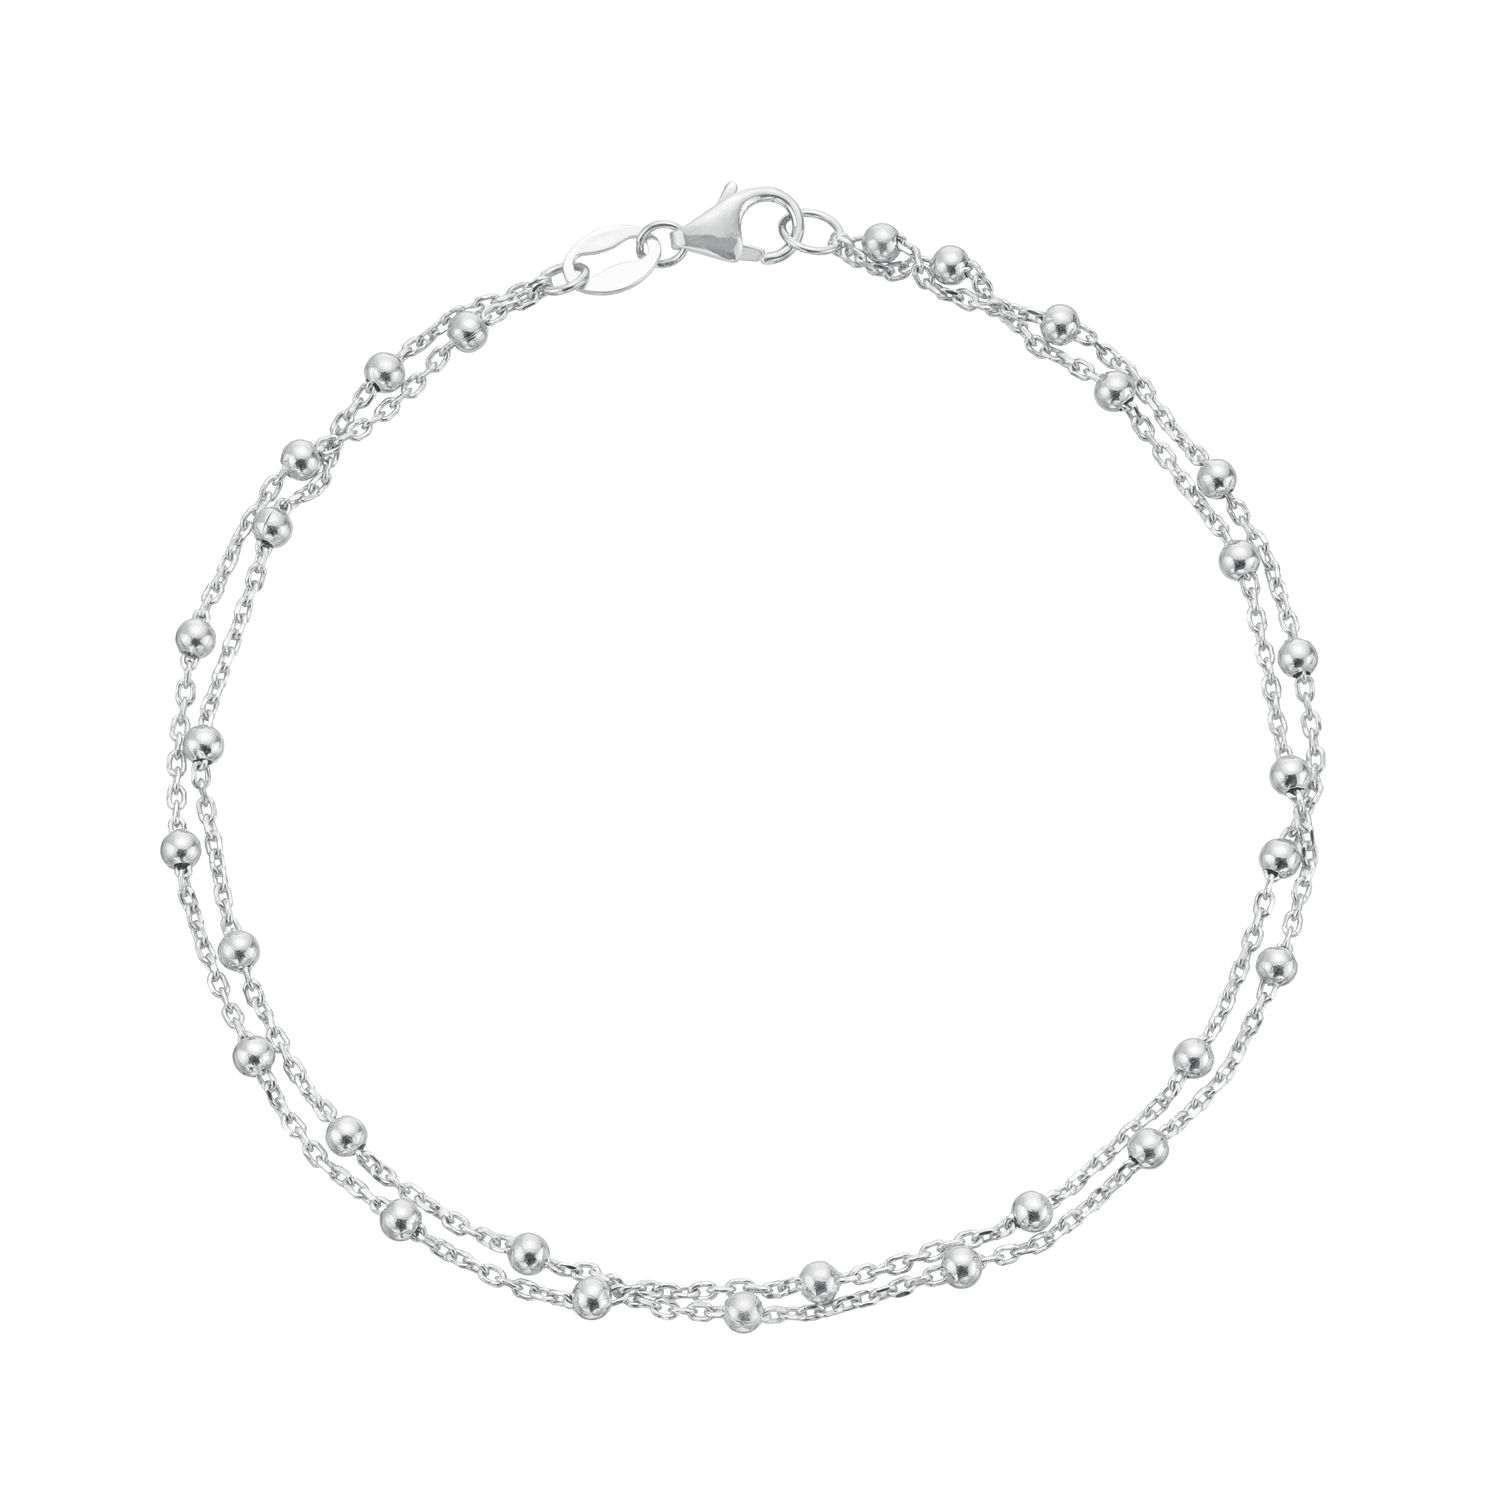 9ct White Gold Ball Station Double Chain Bracelet - Product number 3165833